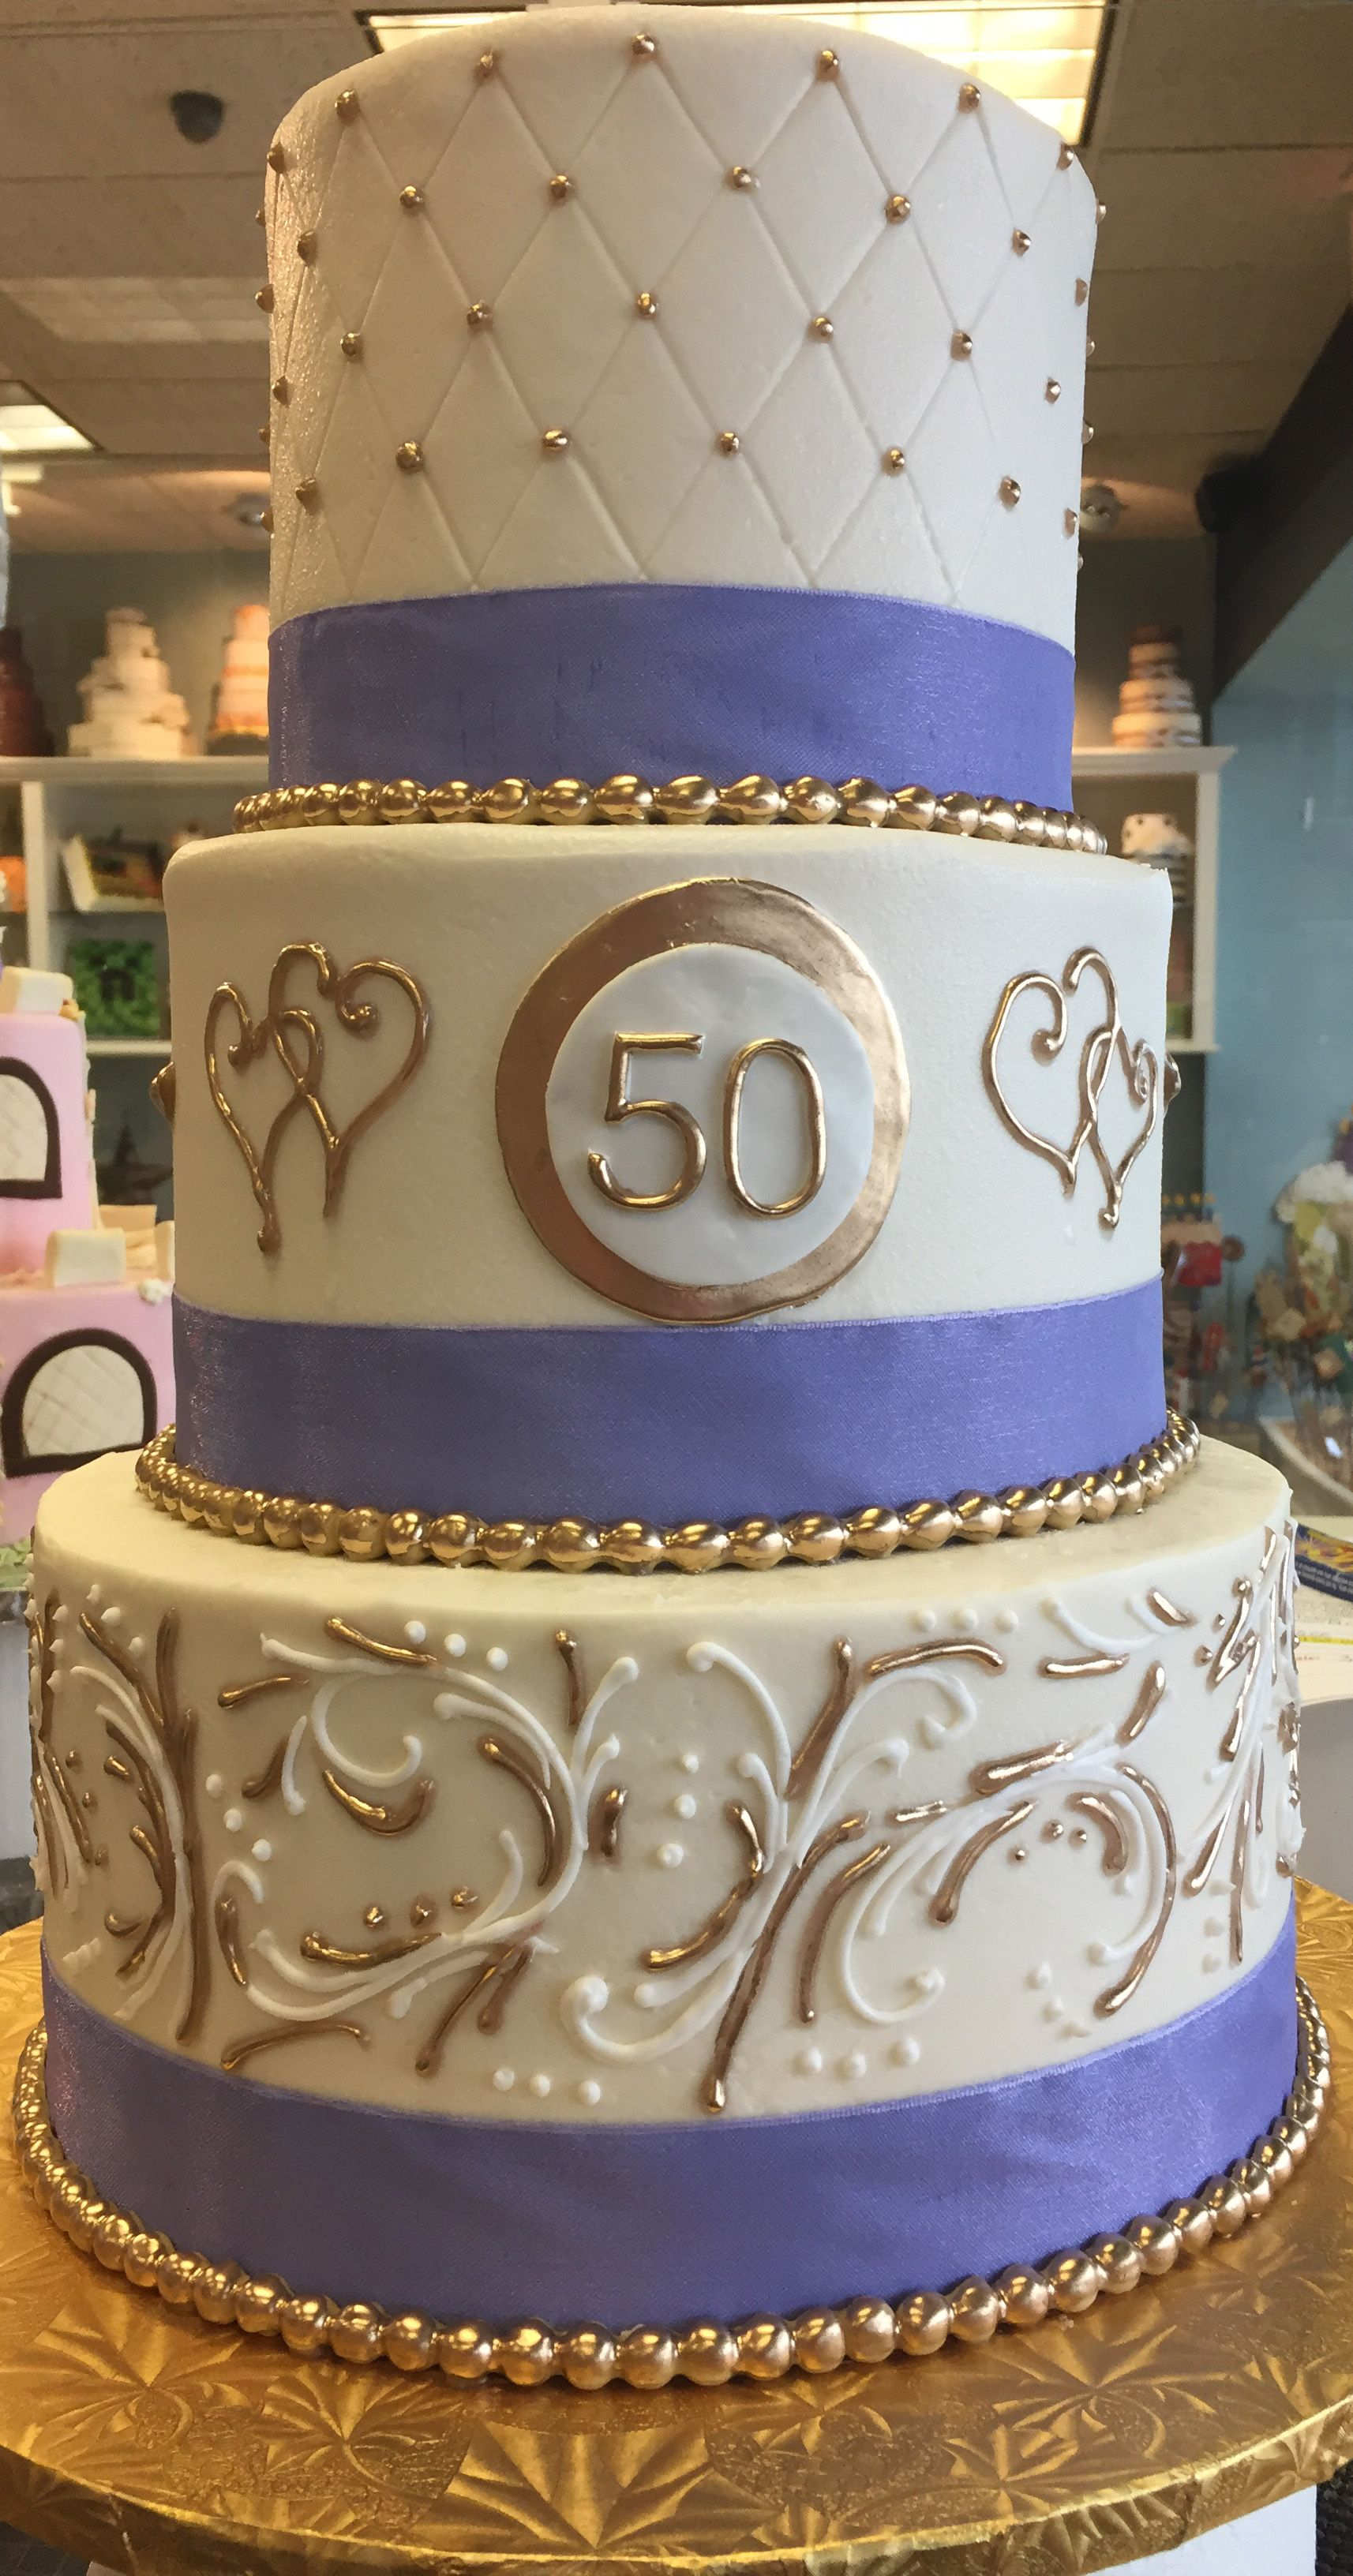 3 Tiered 50th Anniversary Cake In Purple And Gold Cake 009